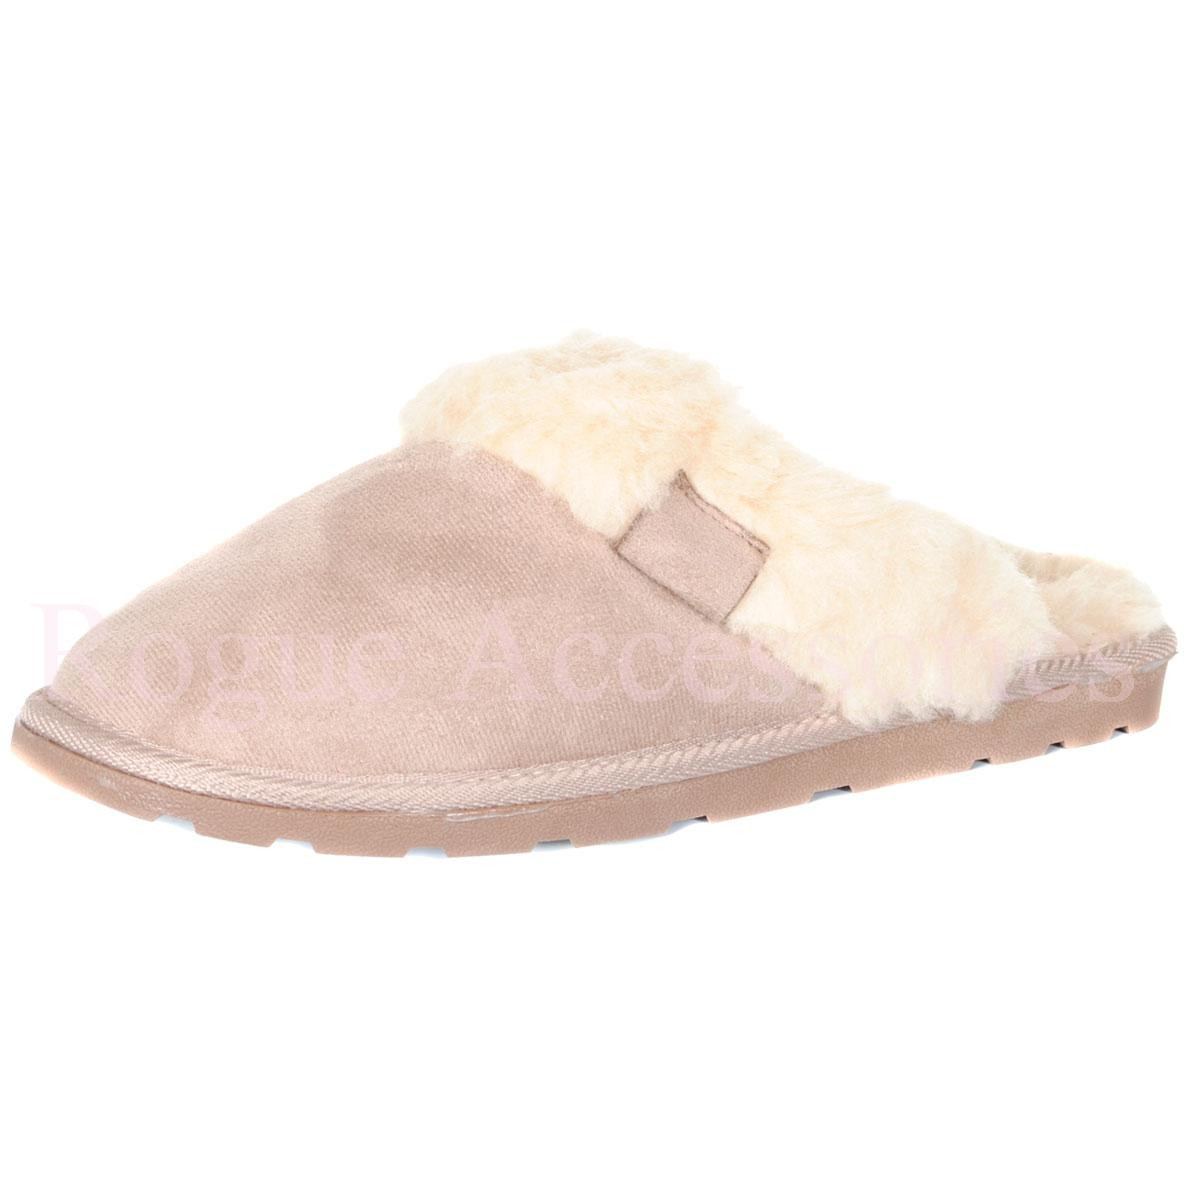 Bedroom Shoes For Womens  La s Fur Lined Slip Mule Slippers Bedroom House Shoes